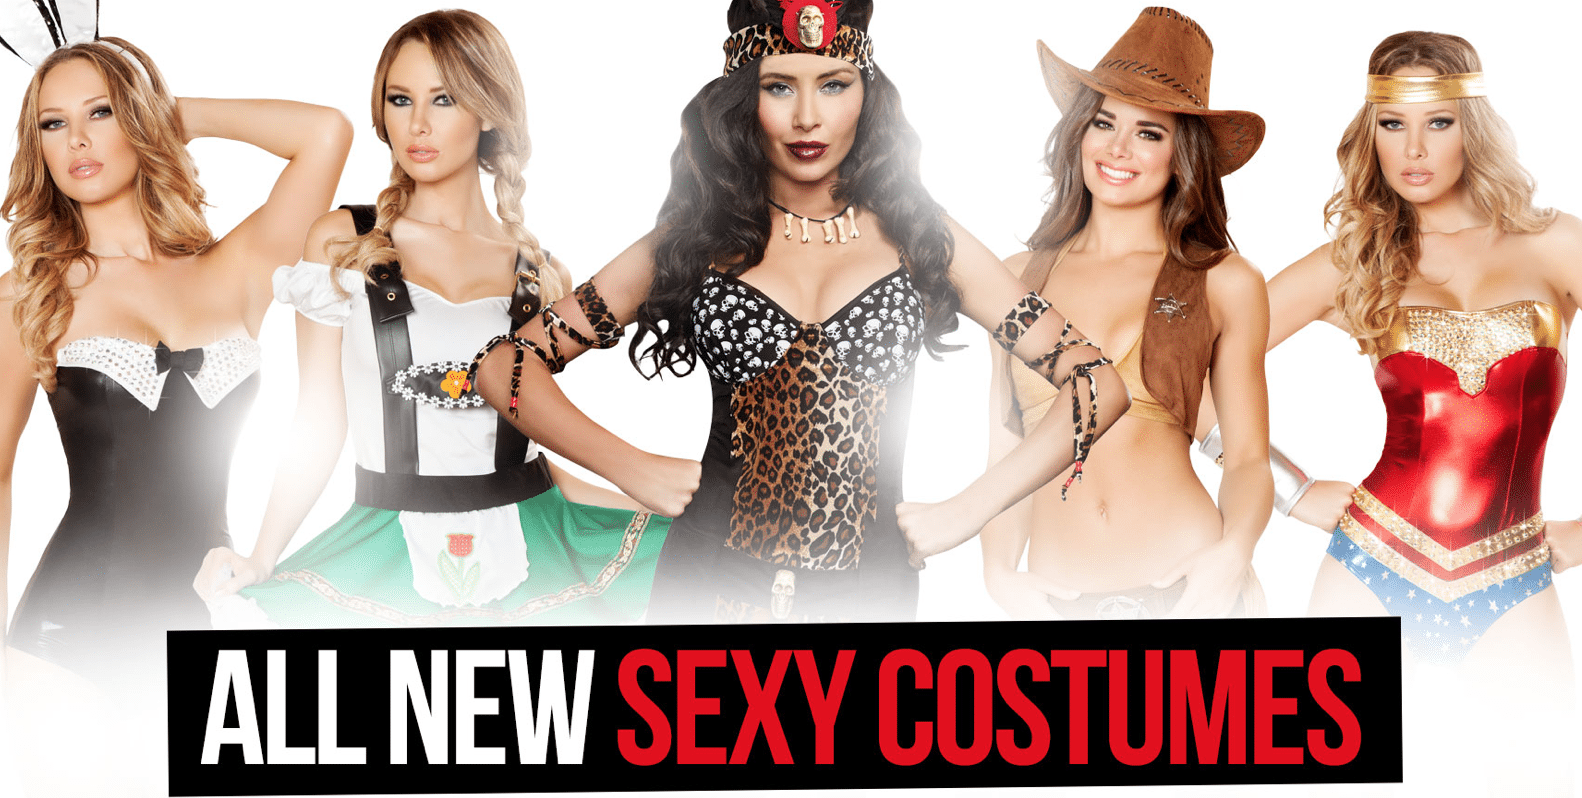 The Ultimate Slutty Halloween Costumes